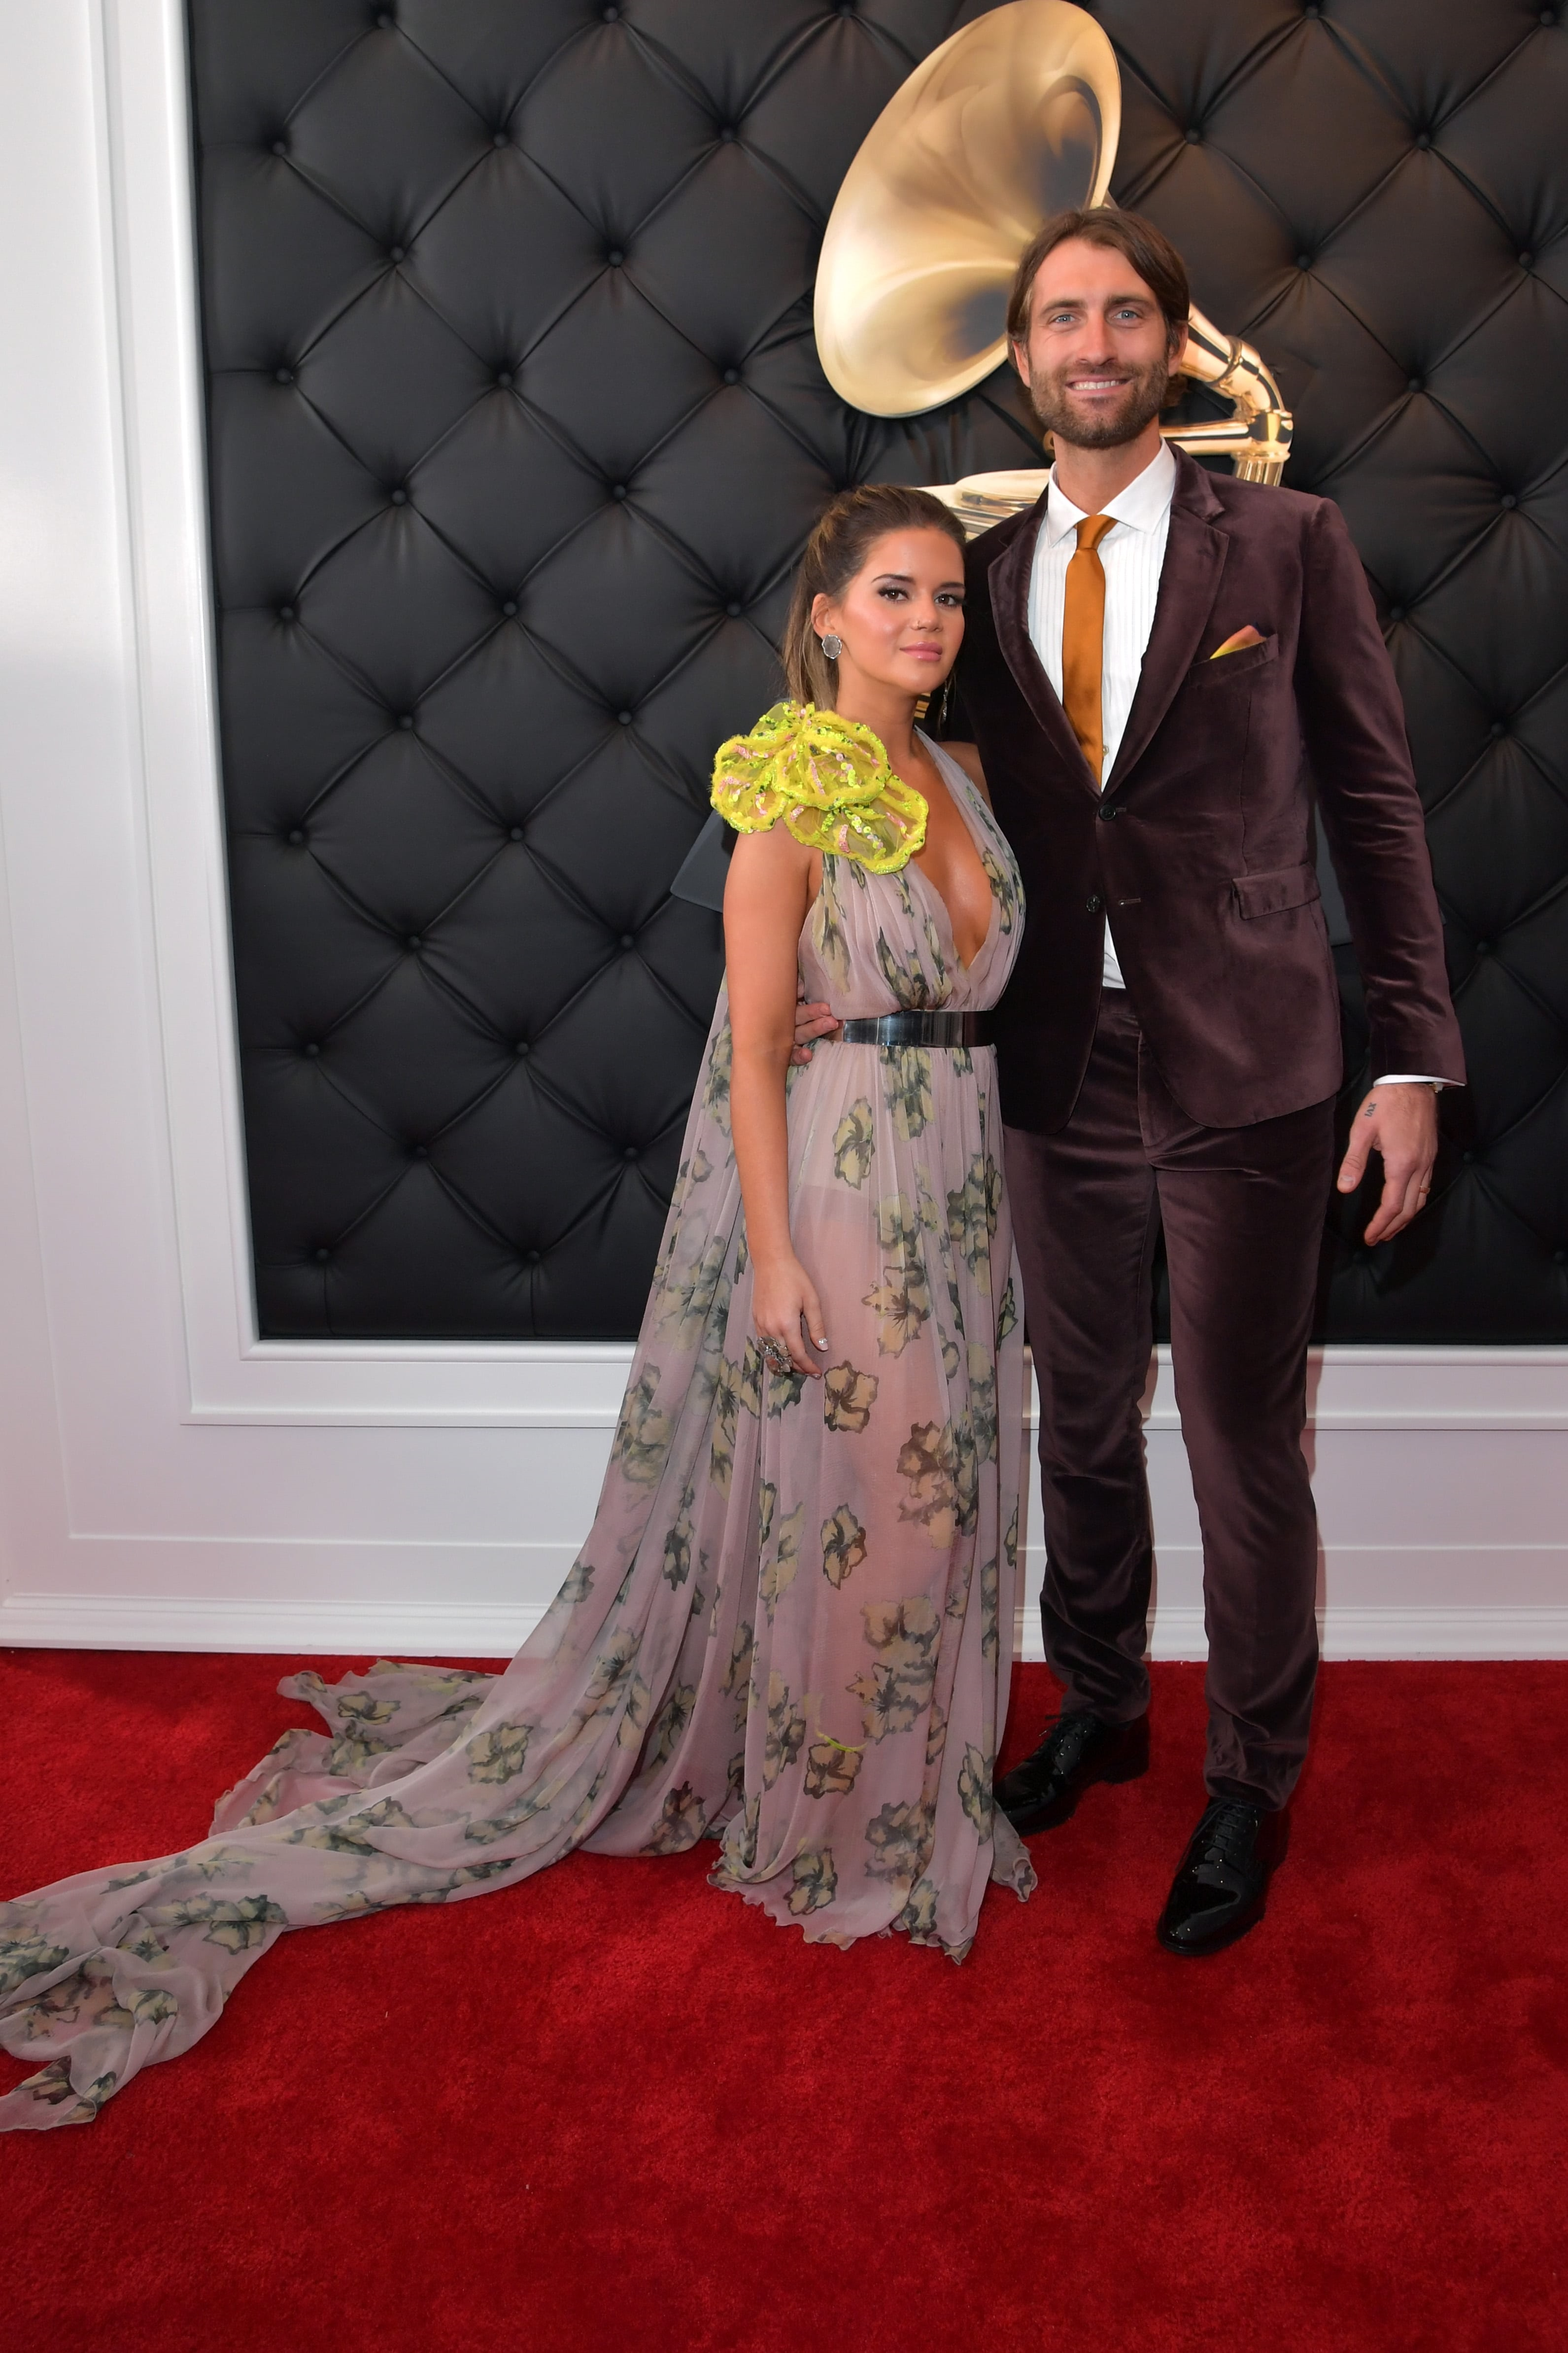 LOS ANGELES, CA - FEBRUARY 10: (L-R) Maren Morris and Ryan Hurd attend the 61st Annual GRAMMY Awards at Staples Center on February 10, 2019 in Los Angeles, California. (Photo by Lester Cohen/Getty Images for The Recording Academy)